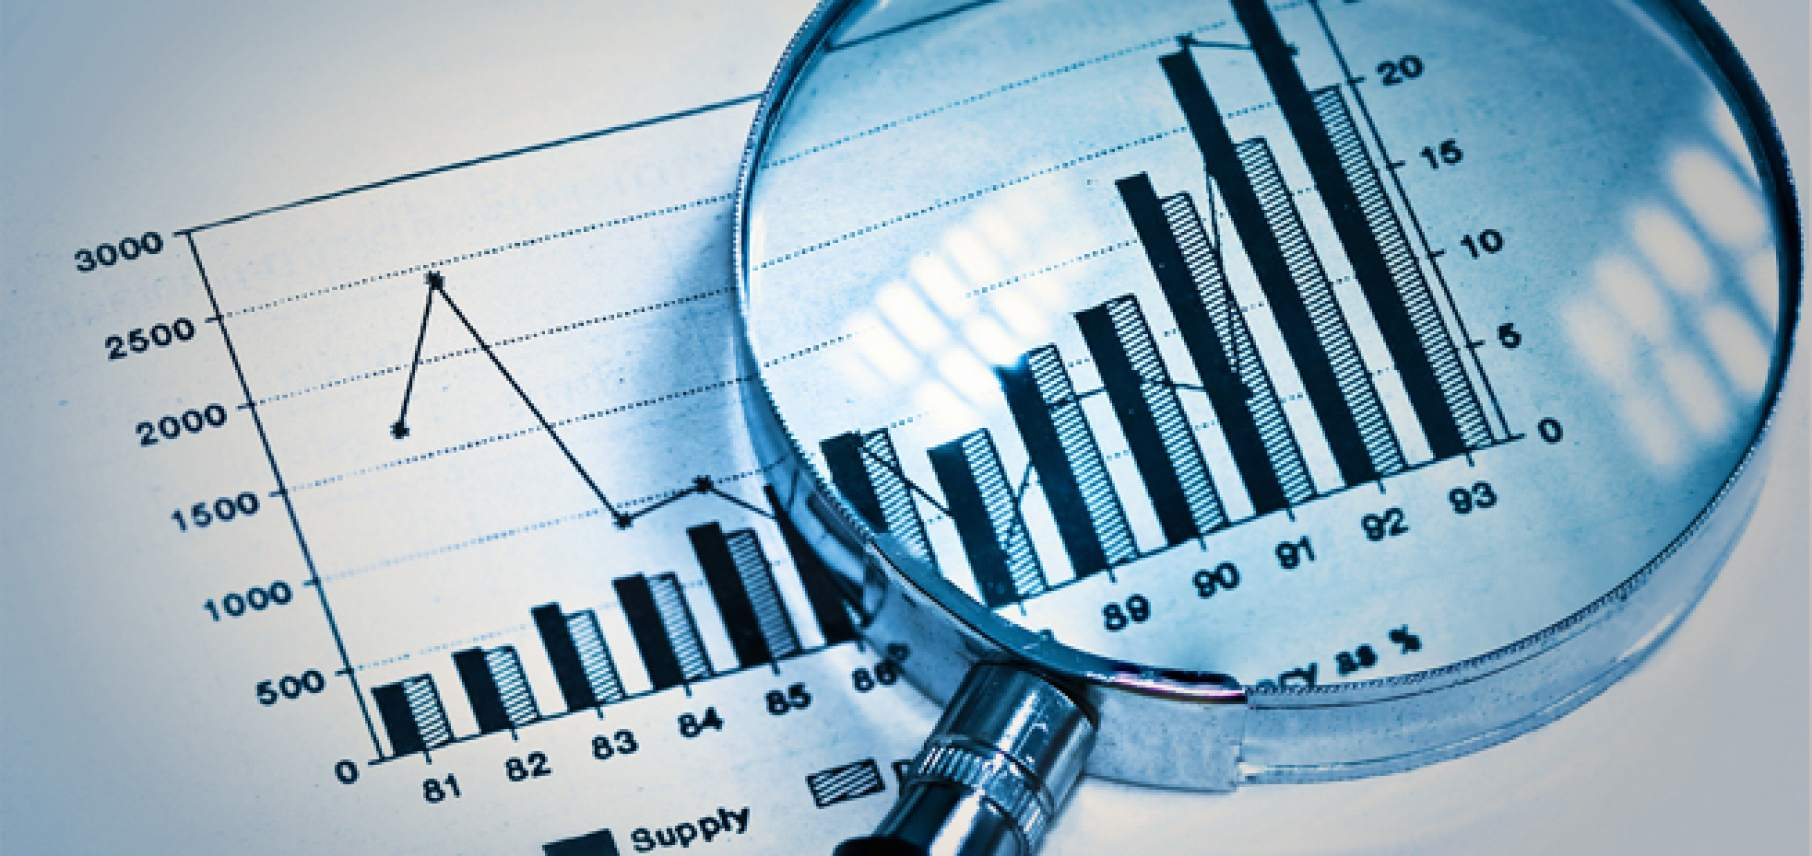 forex market research paper Forex research following the smart money the euromoney survey can provide a good insight regarding the top institutional players in the forex market.